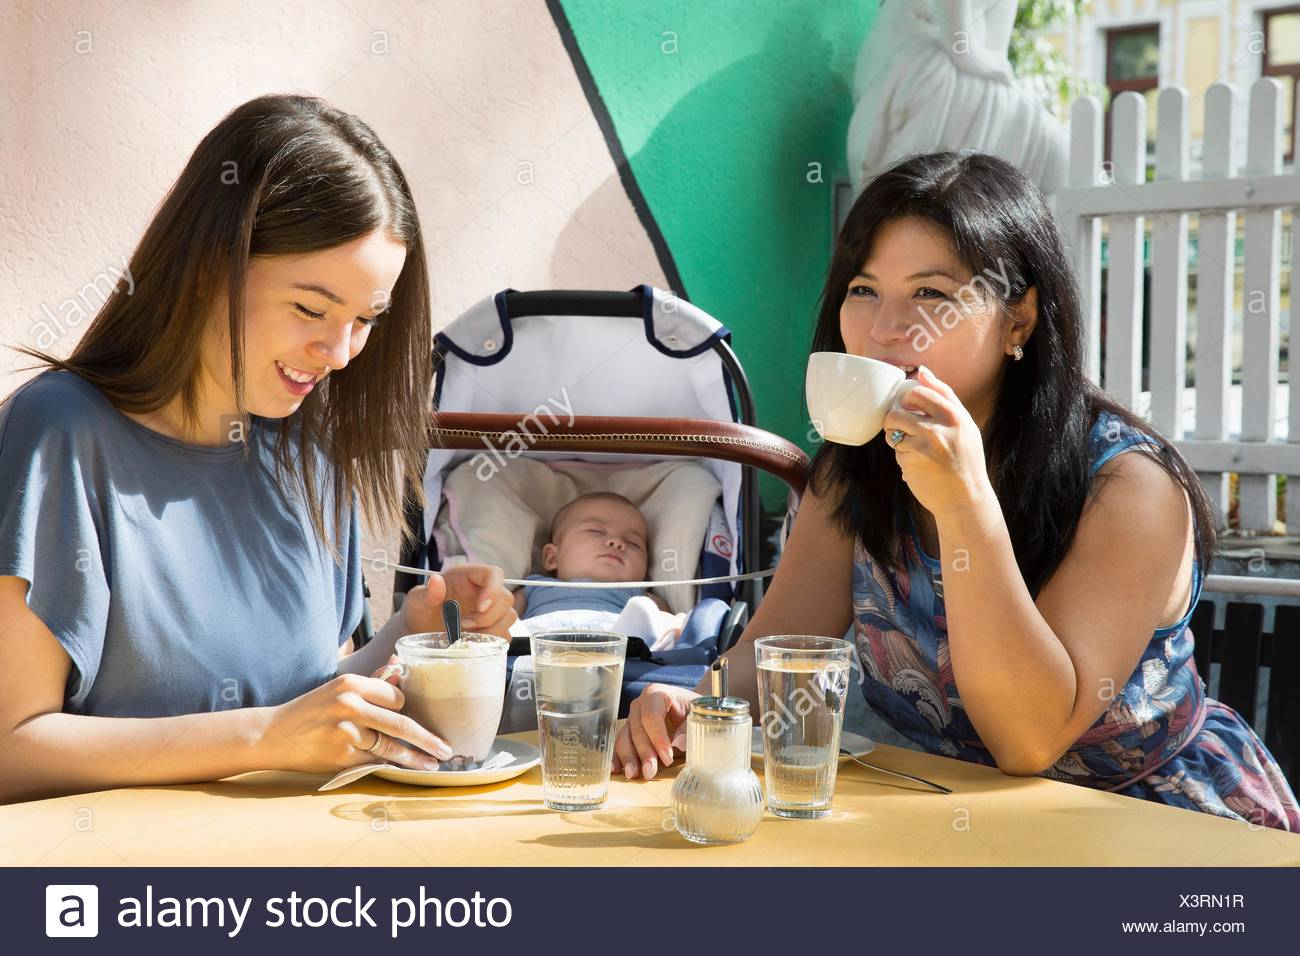 Young woman with mother and baby daughter drinking coffee at sidewalk cafe - Stock Image